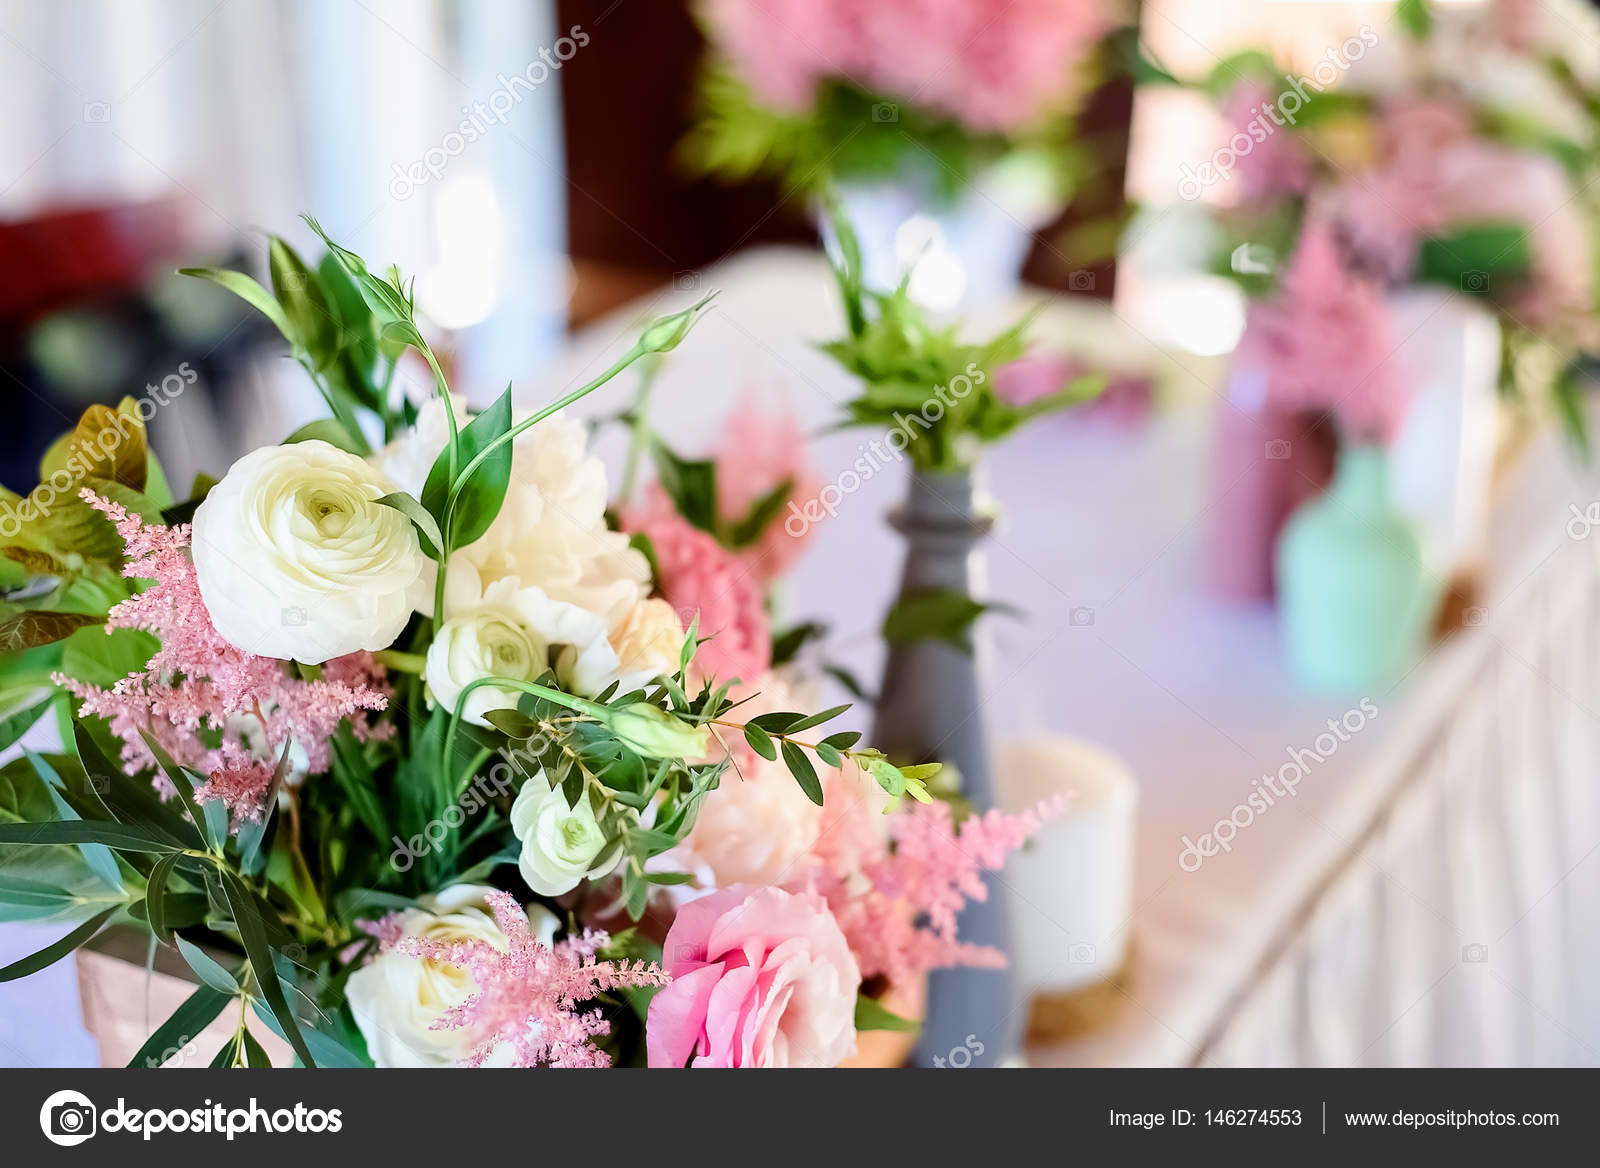 Wedding Decorations Wooden Pink Flowers Ribbons Stock Photo